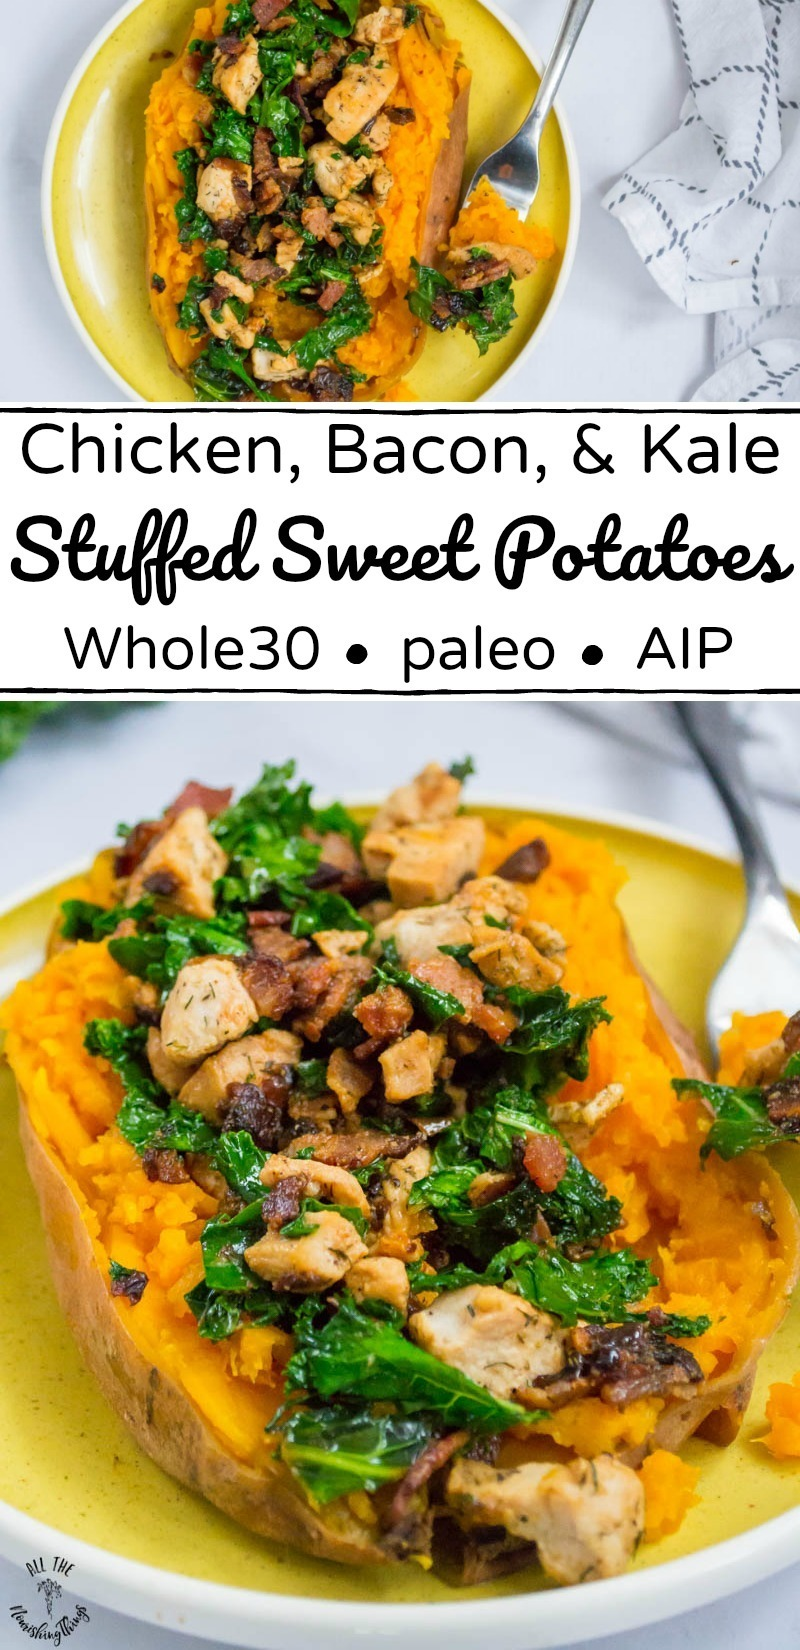 chicken, bacon, and kale stuffed sweet potatoes with text overlay